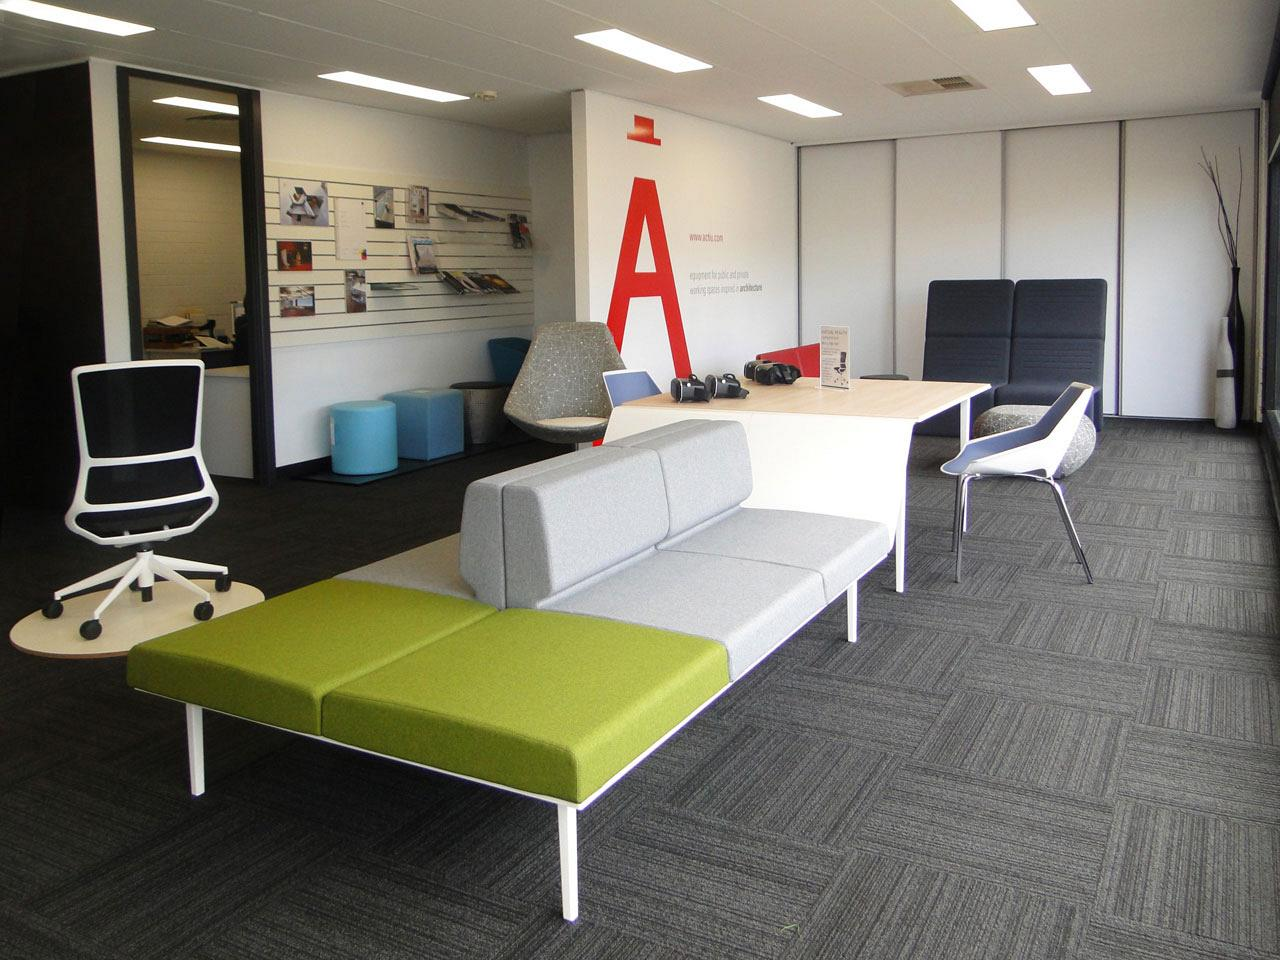 Resource Furniture, A New Partner Specialising in Offices, Libraries and Education 8